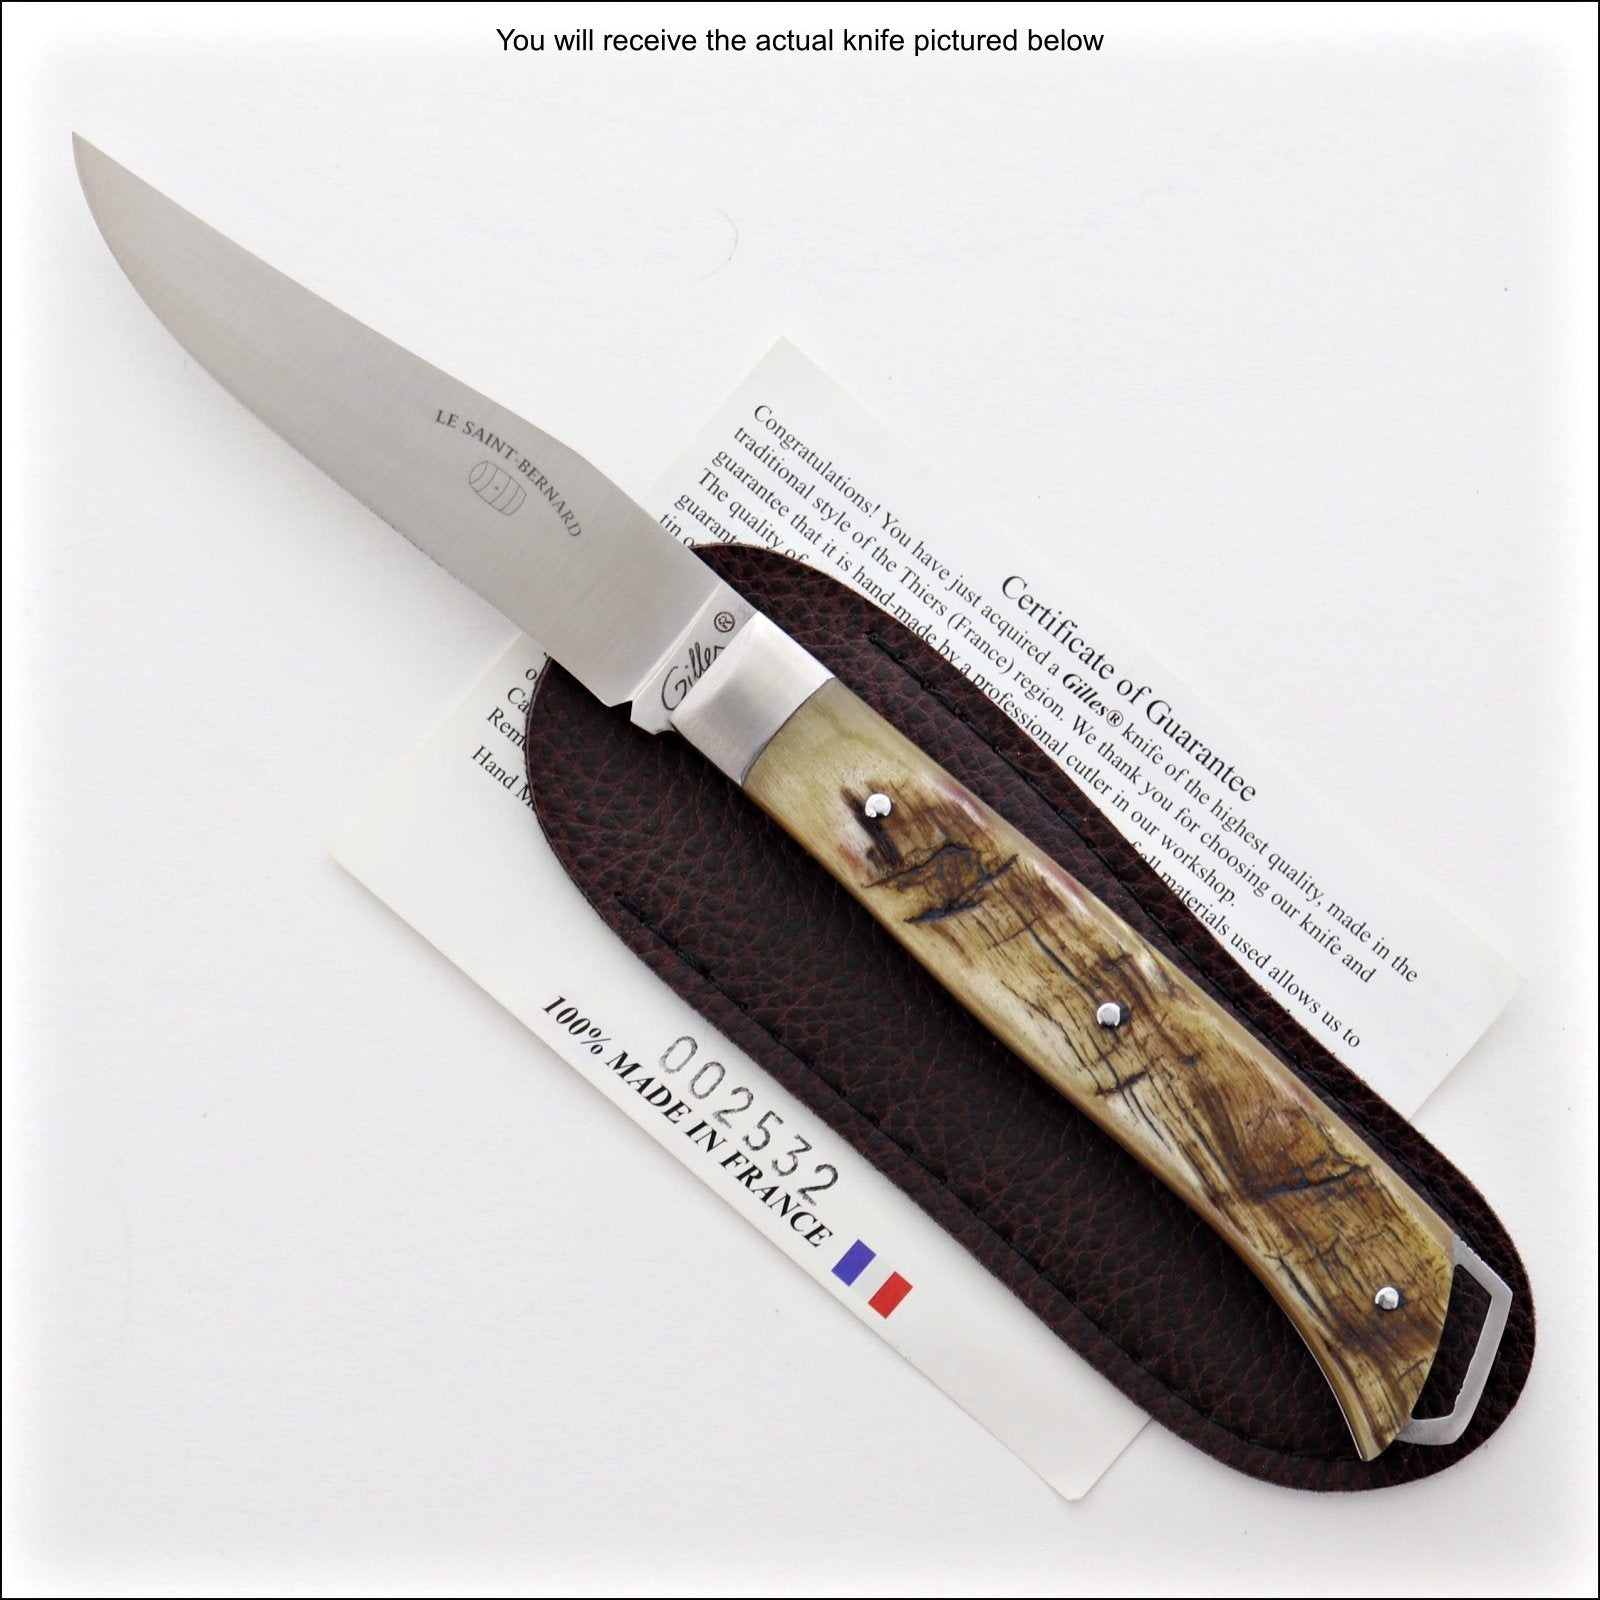 Le Saint-Bernard Pocket Knife - Ram Horn Handle - G